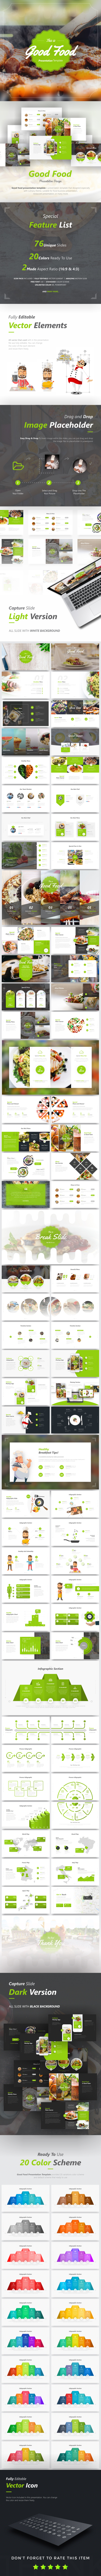 Good Food Presentation Template - Business PowerPoint Templates